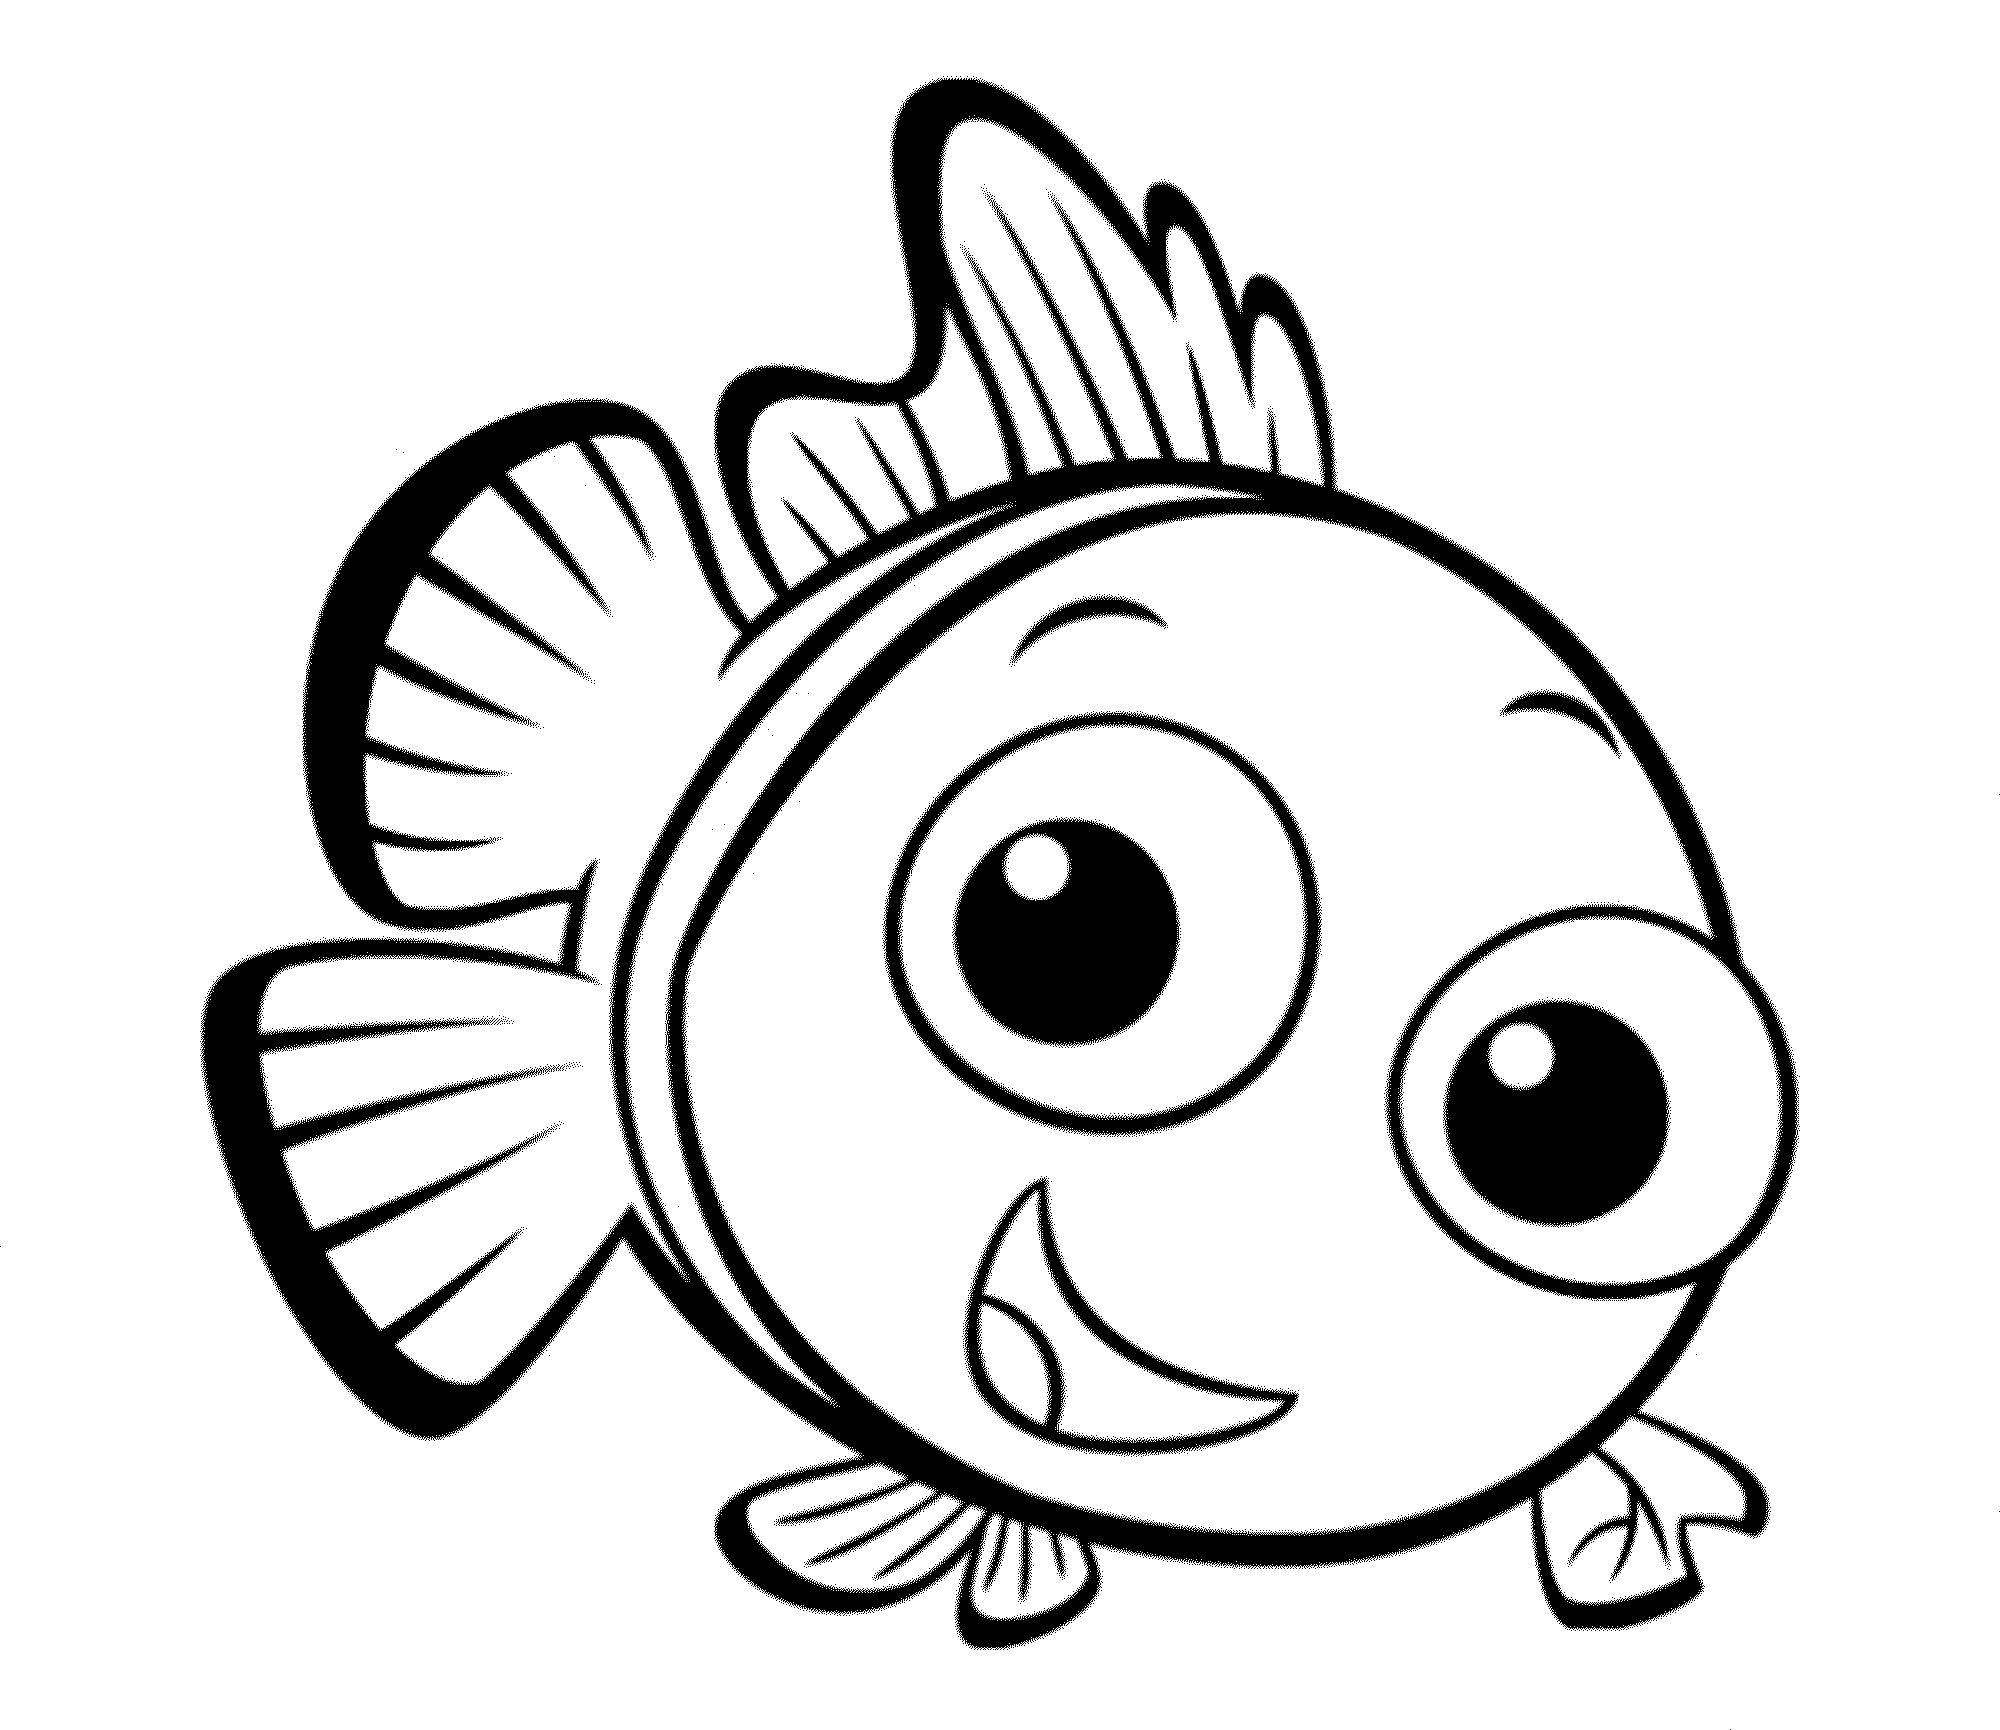 fish coloring pages to print - photo#30